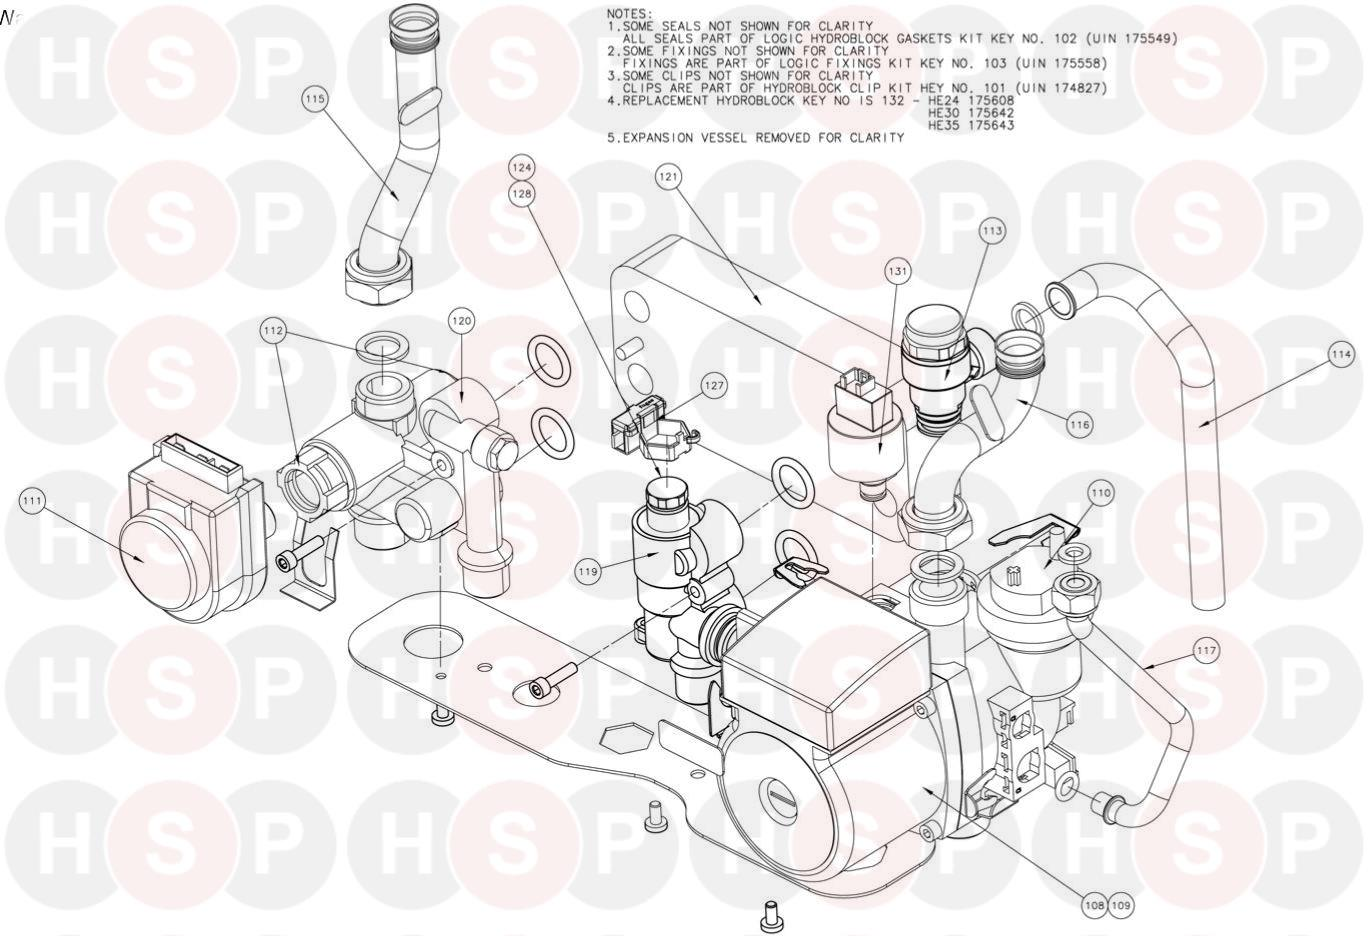 penn international 30 diagram ideal logic + combi 30 (water management) diagram | heating spare parts ideal logic combi 30 diagram